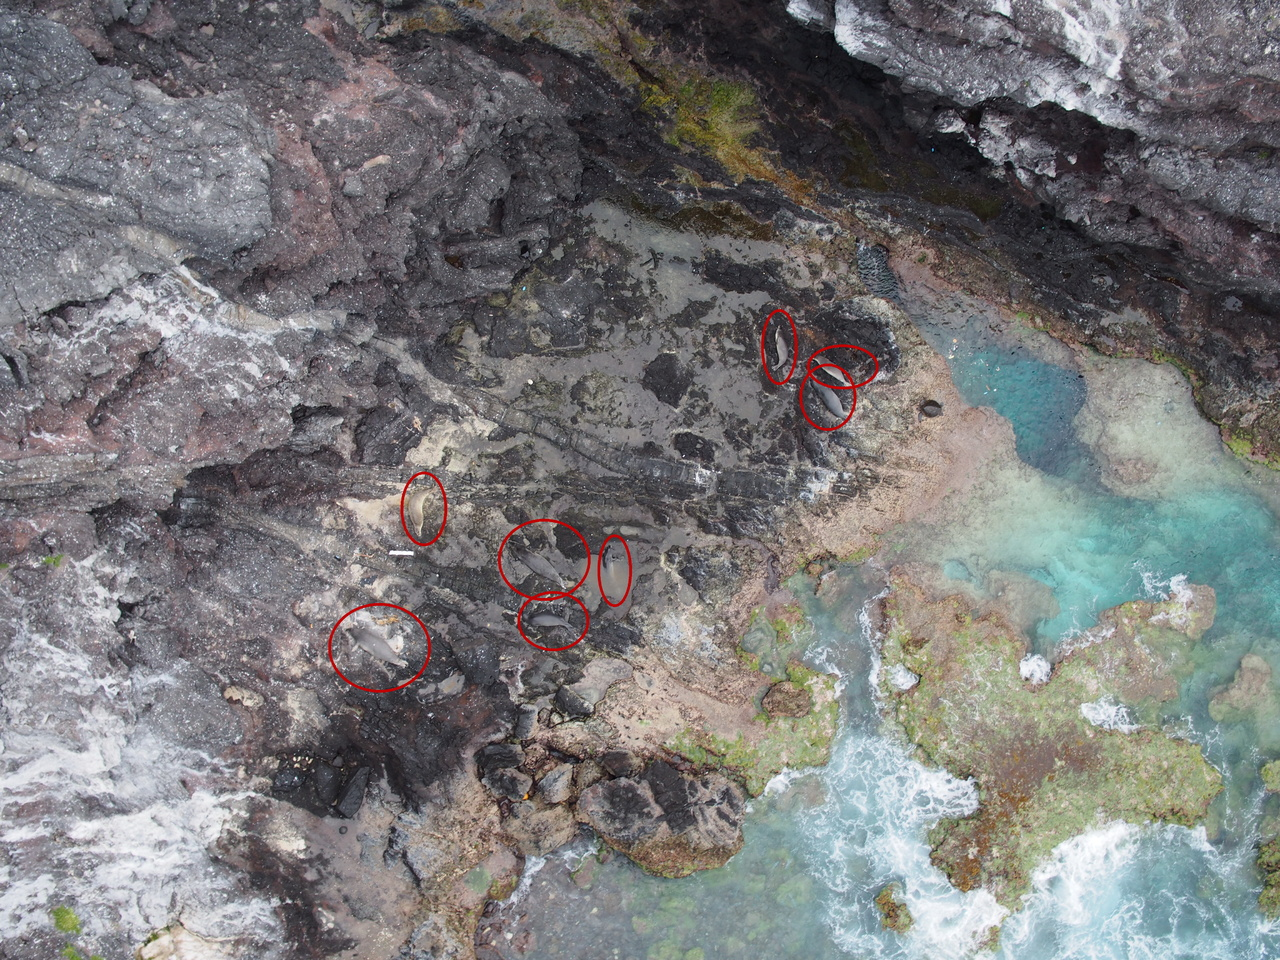 The saddle of Mokumanamana, with the eight monk seals circled.